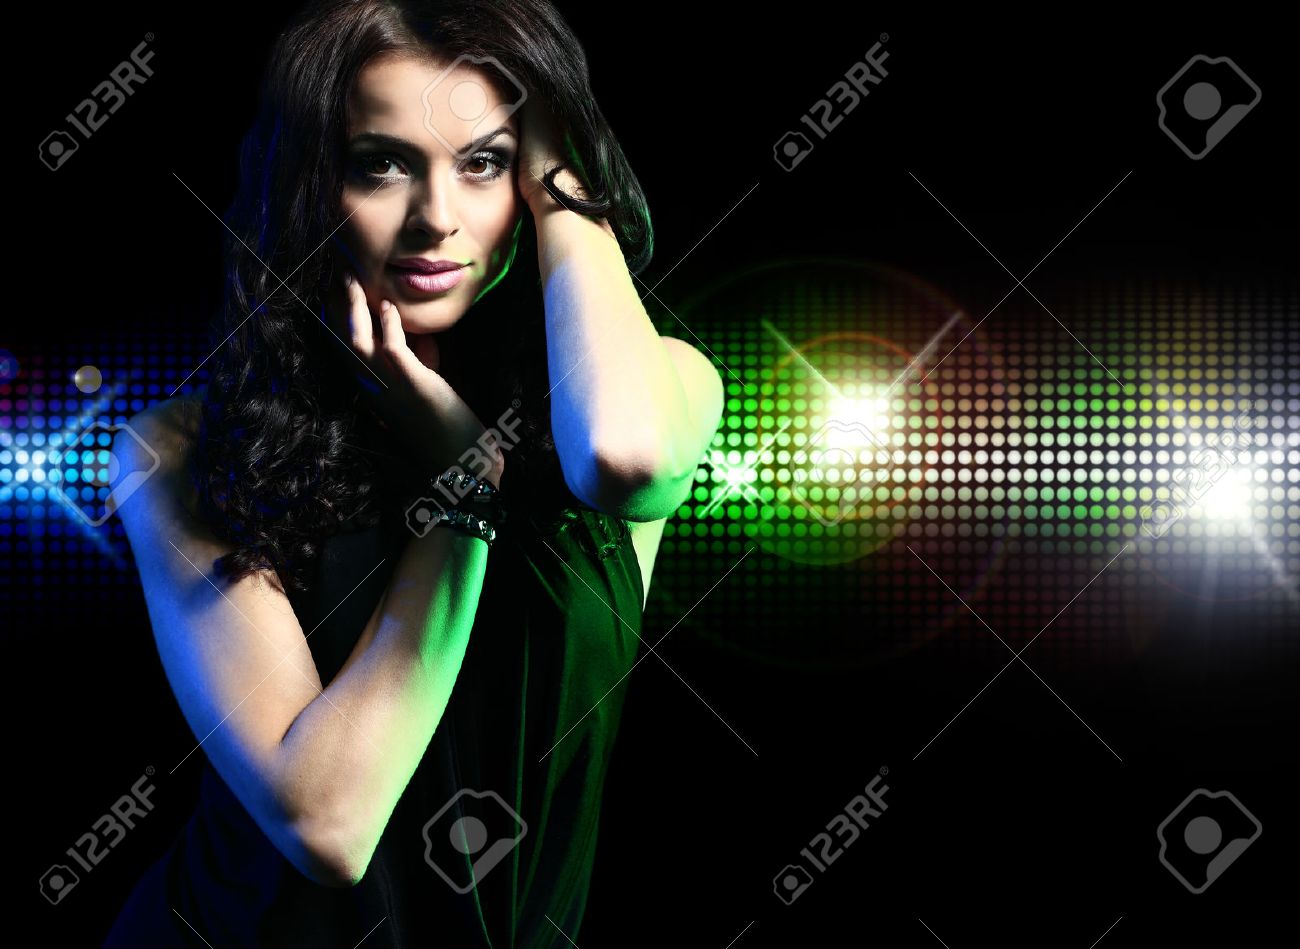 Portrait of dancing girl on disco party - 22400322